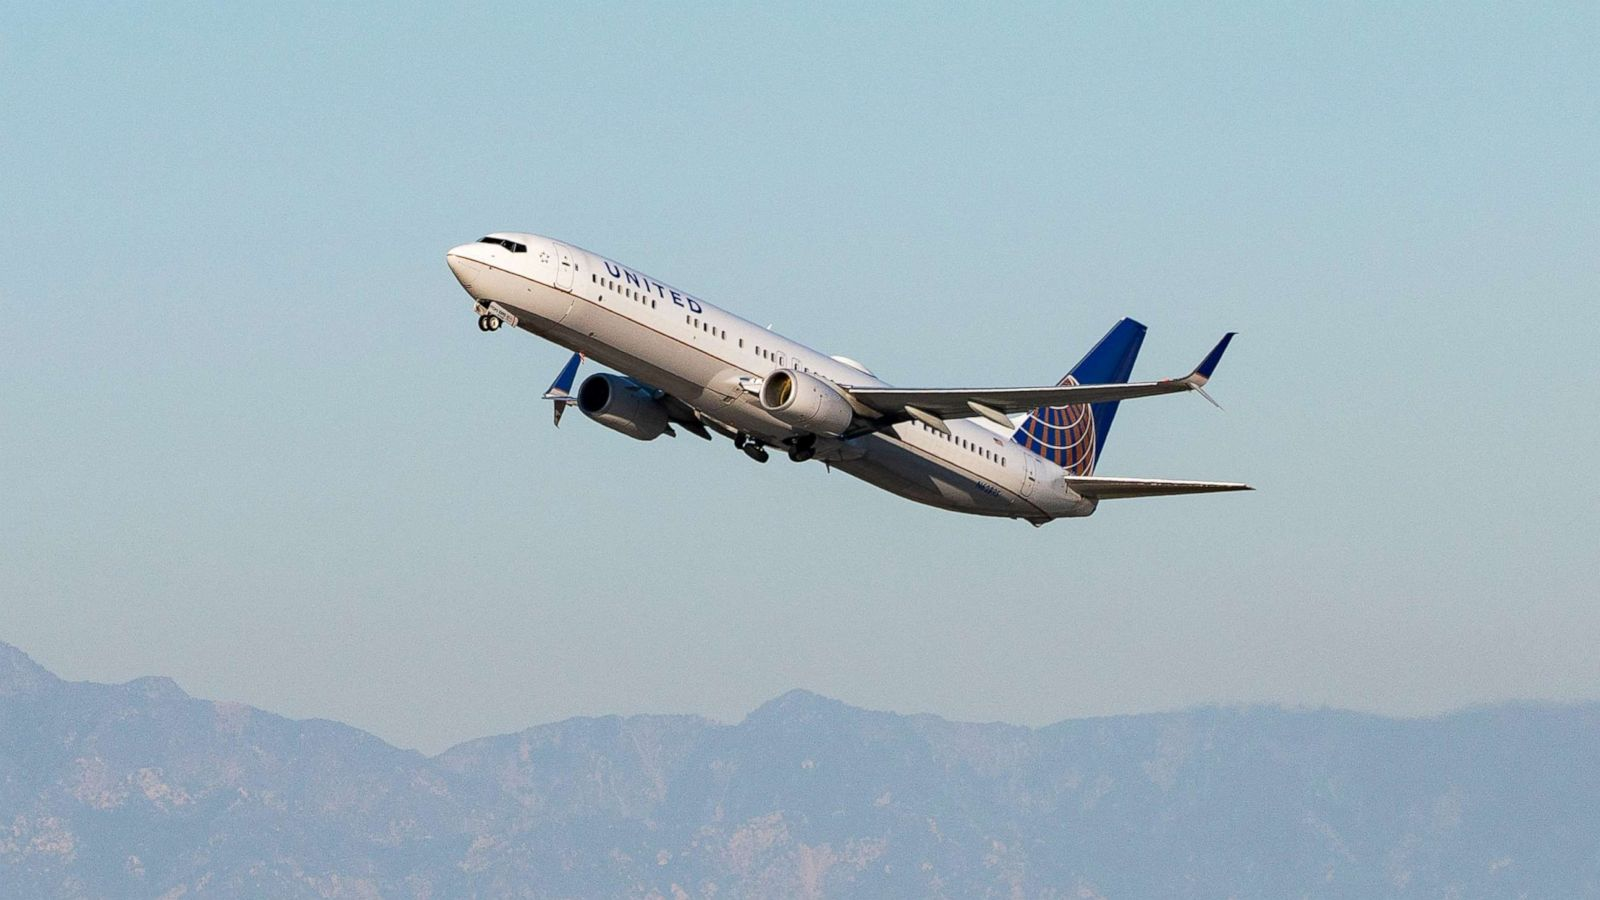 Man With Coronavirus-Related Symptoms Dies After Having Medical Emergency on United Flight